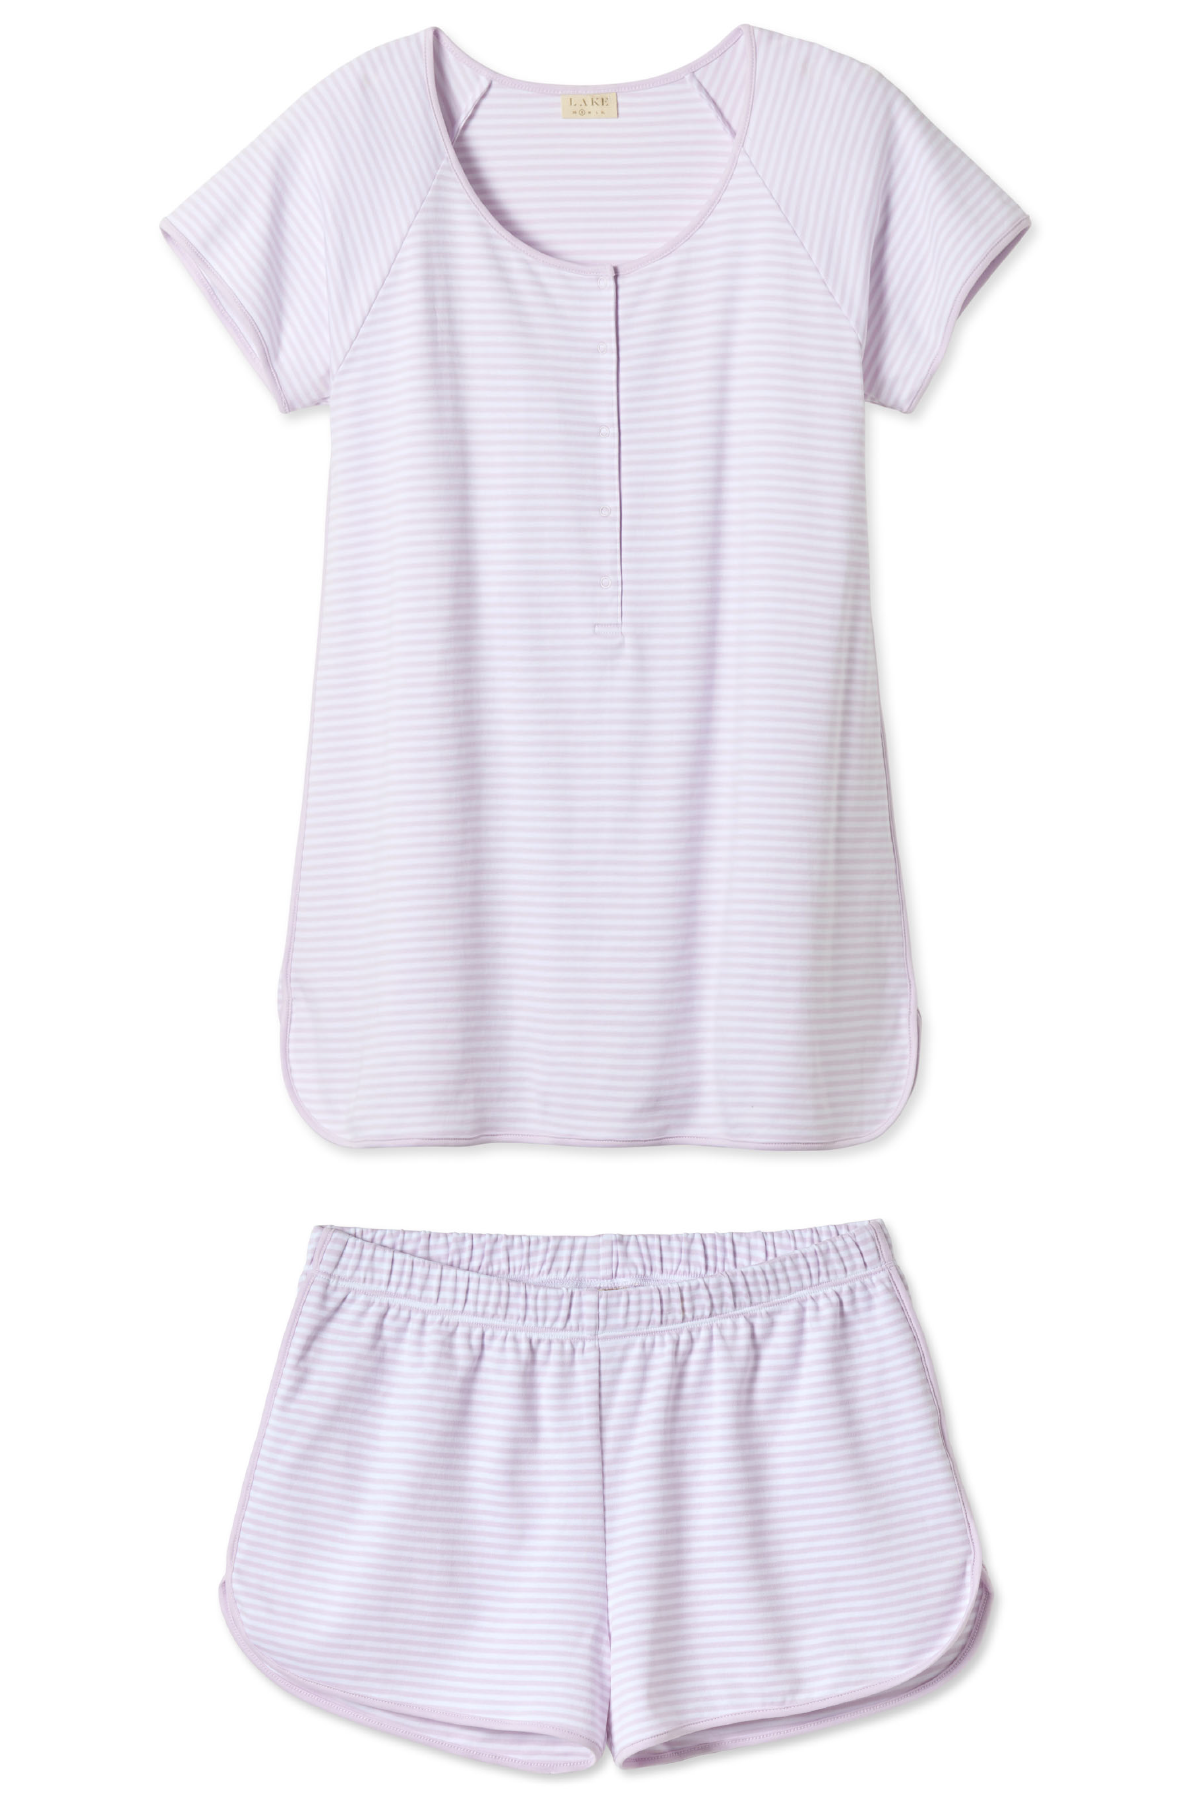 Pima Maternity Shorts Set in Lavender